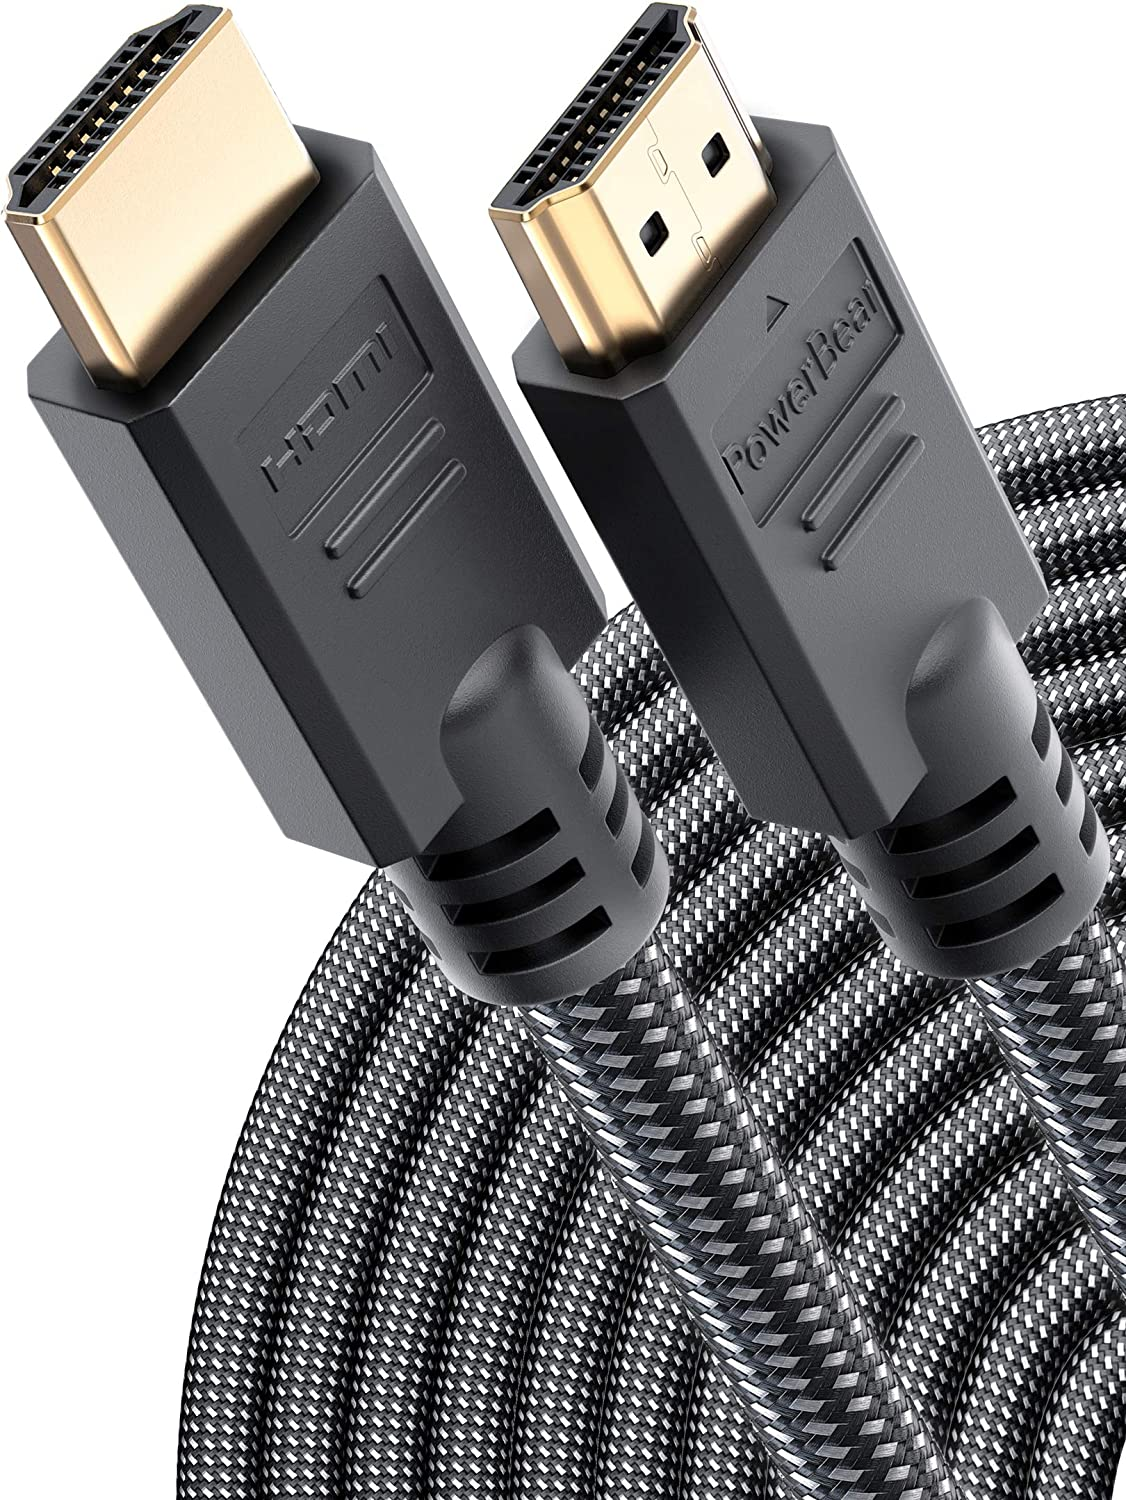 PowerBear 4K HDMI Cable 50 ft   High Speed, Braided Nylon & Gold Connectors, 4K @ 60Hz, Ultra HD, 2K, 1080P, Dolby & ARC Compatible   for Laptop, Monitor, PS5, PS4, Xbox One, Fire TV, Apple TV & More